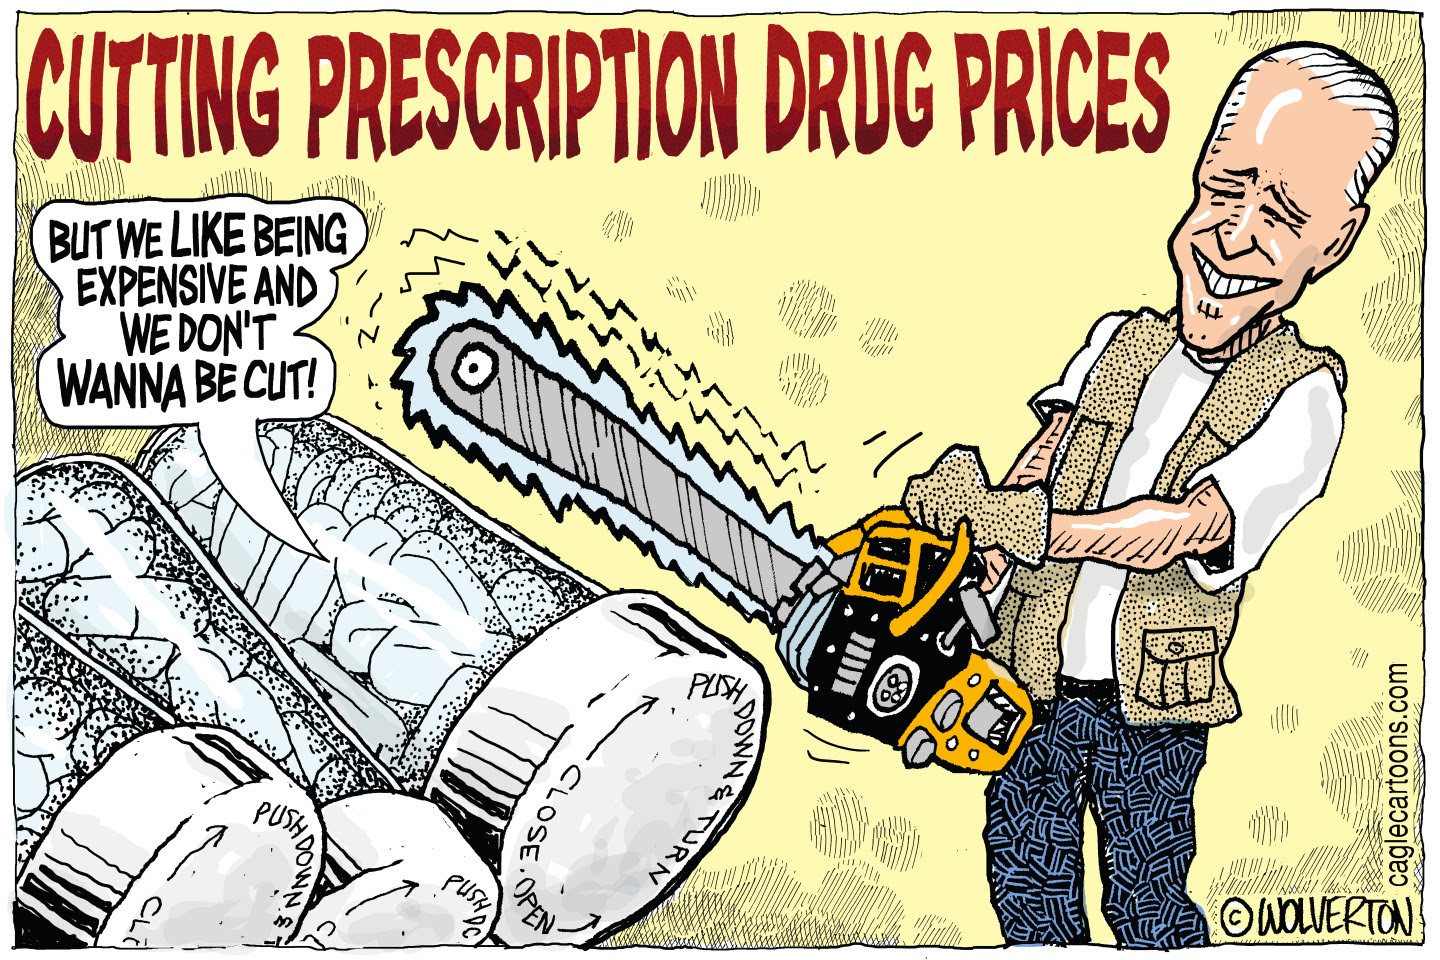 President Biden proposes to cut the price of prescription drugs. Republicans backed by pharma donations oppose the measure.